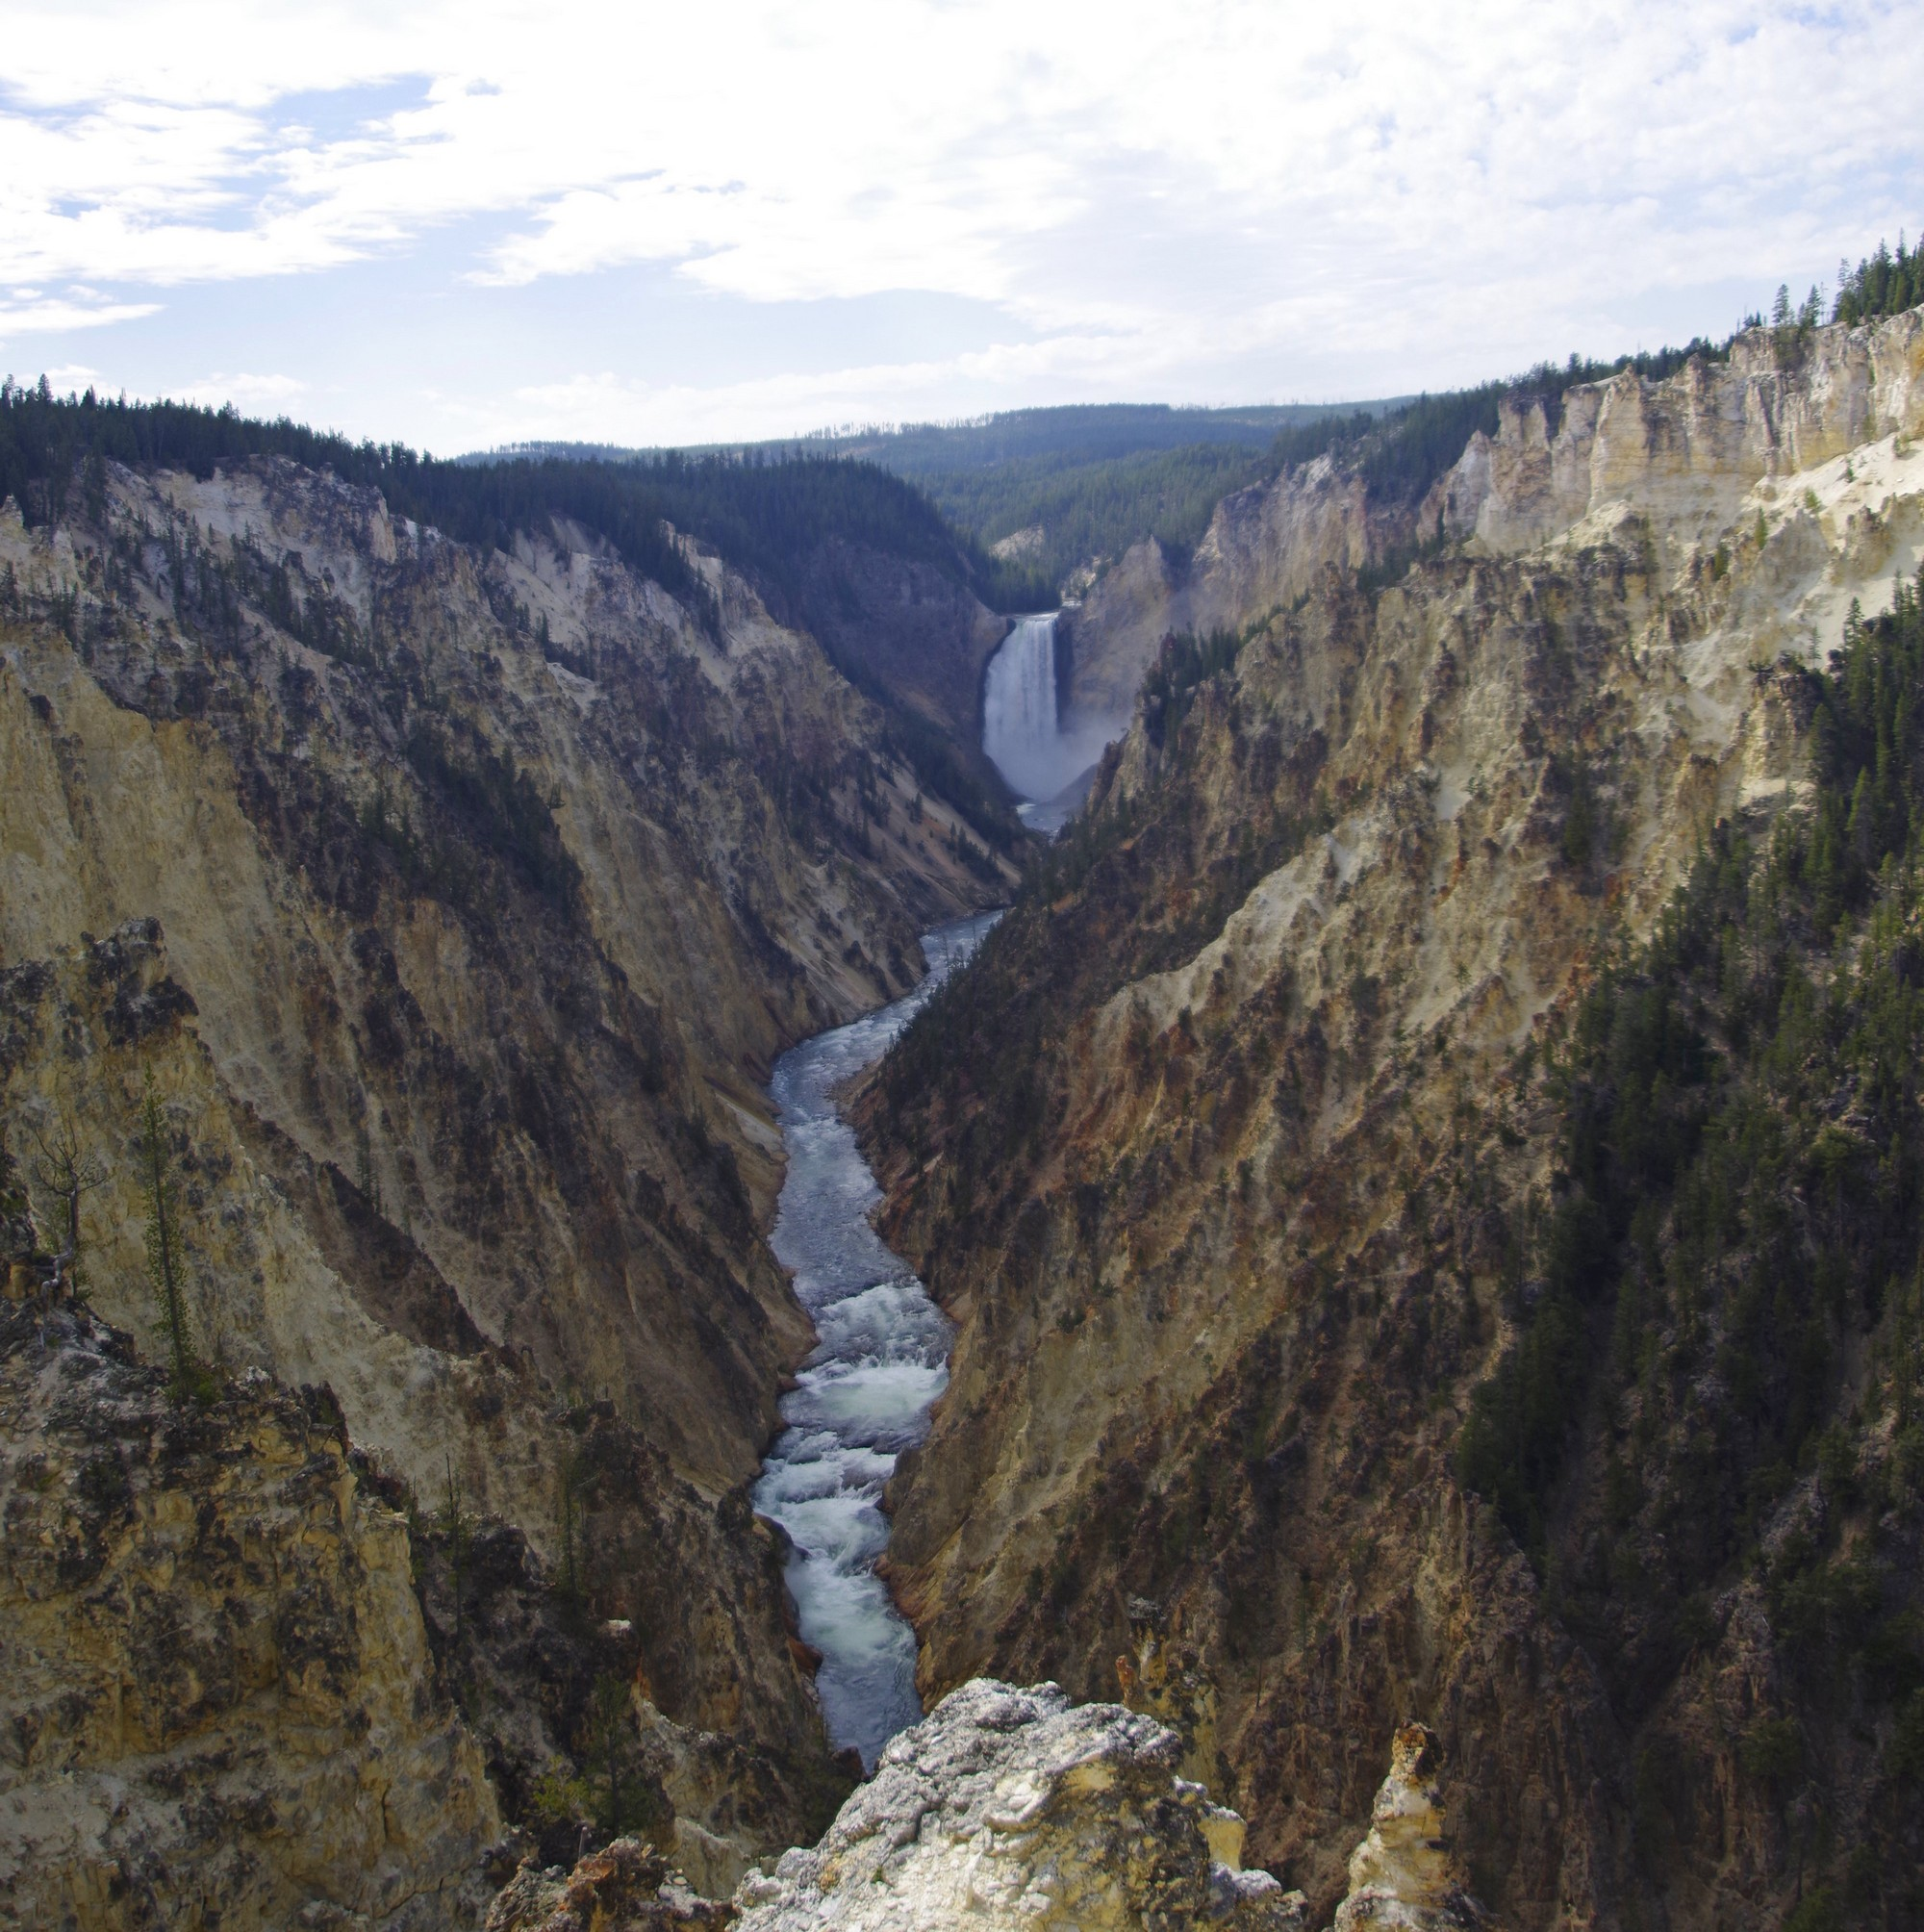 Chute Canyon Yellowstone 2